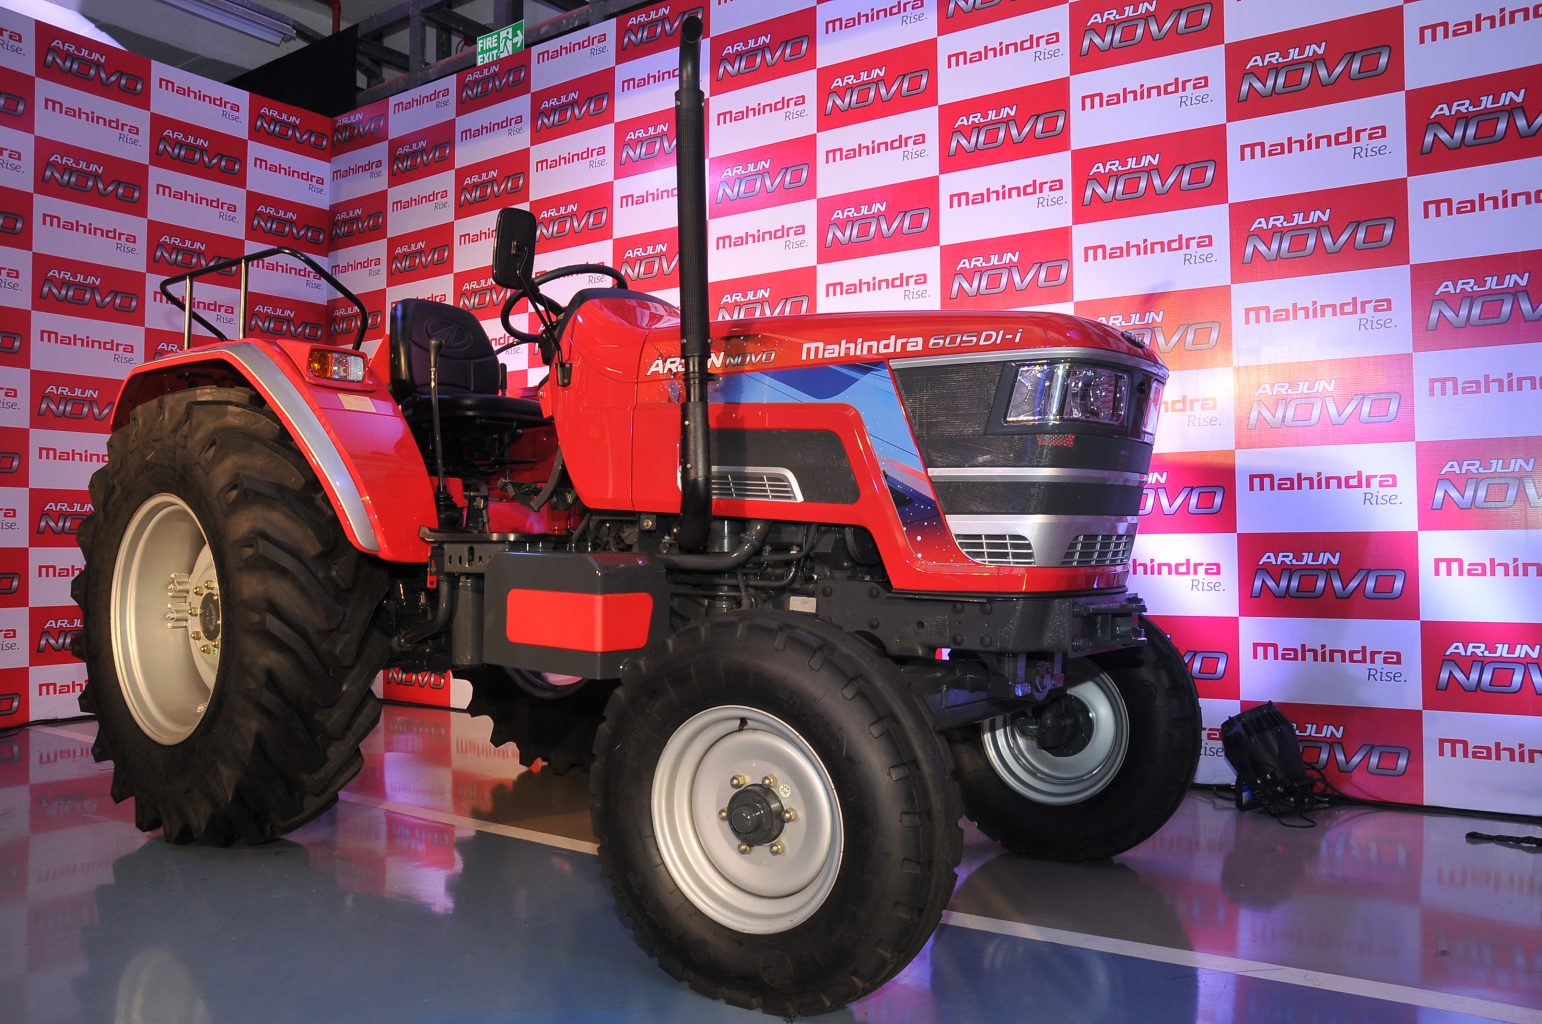 Mahindra-605-DI-I-review